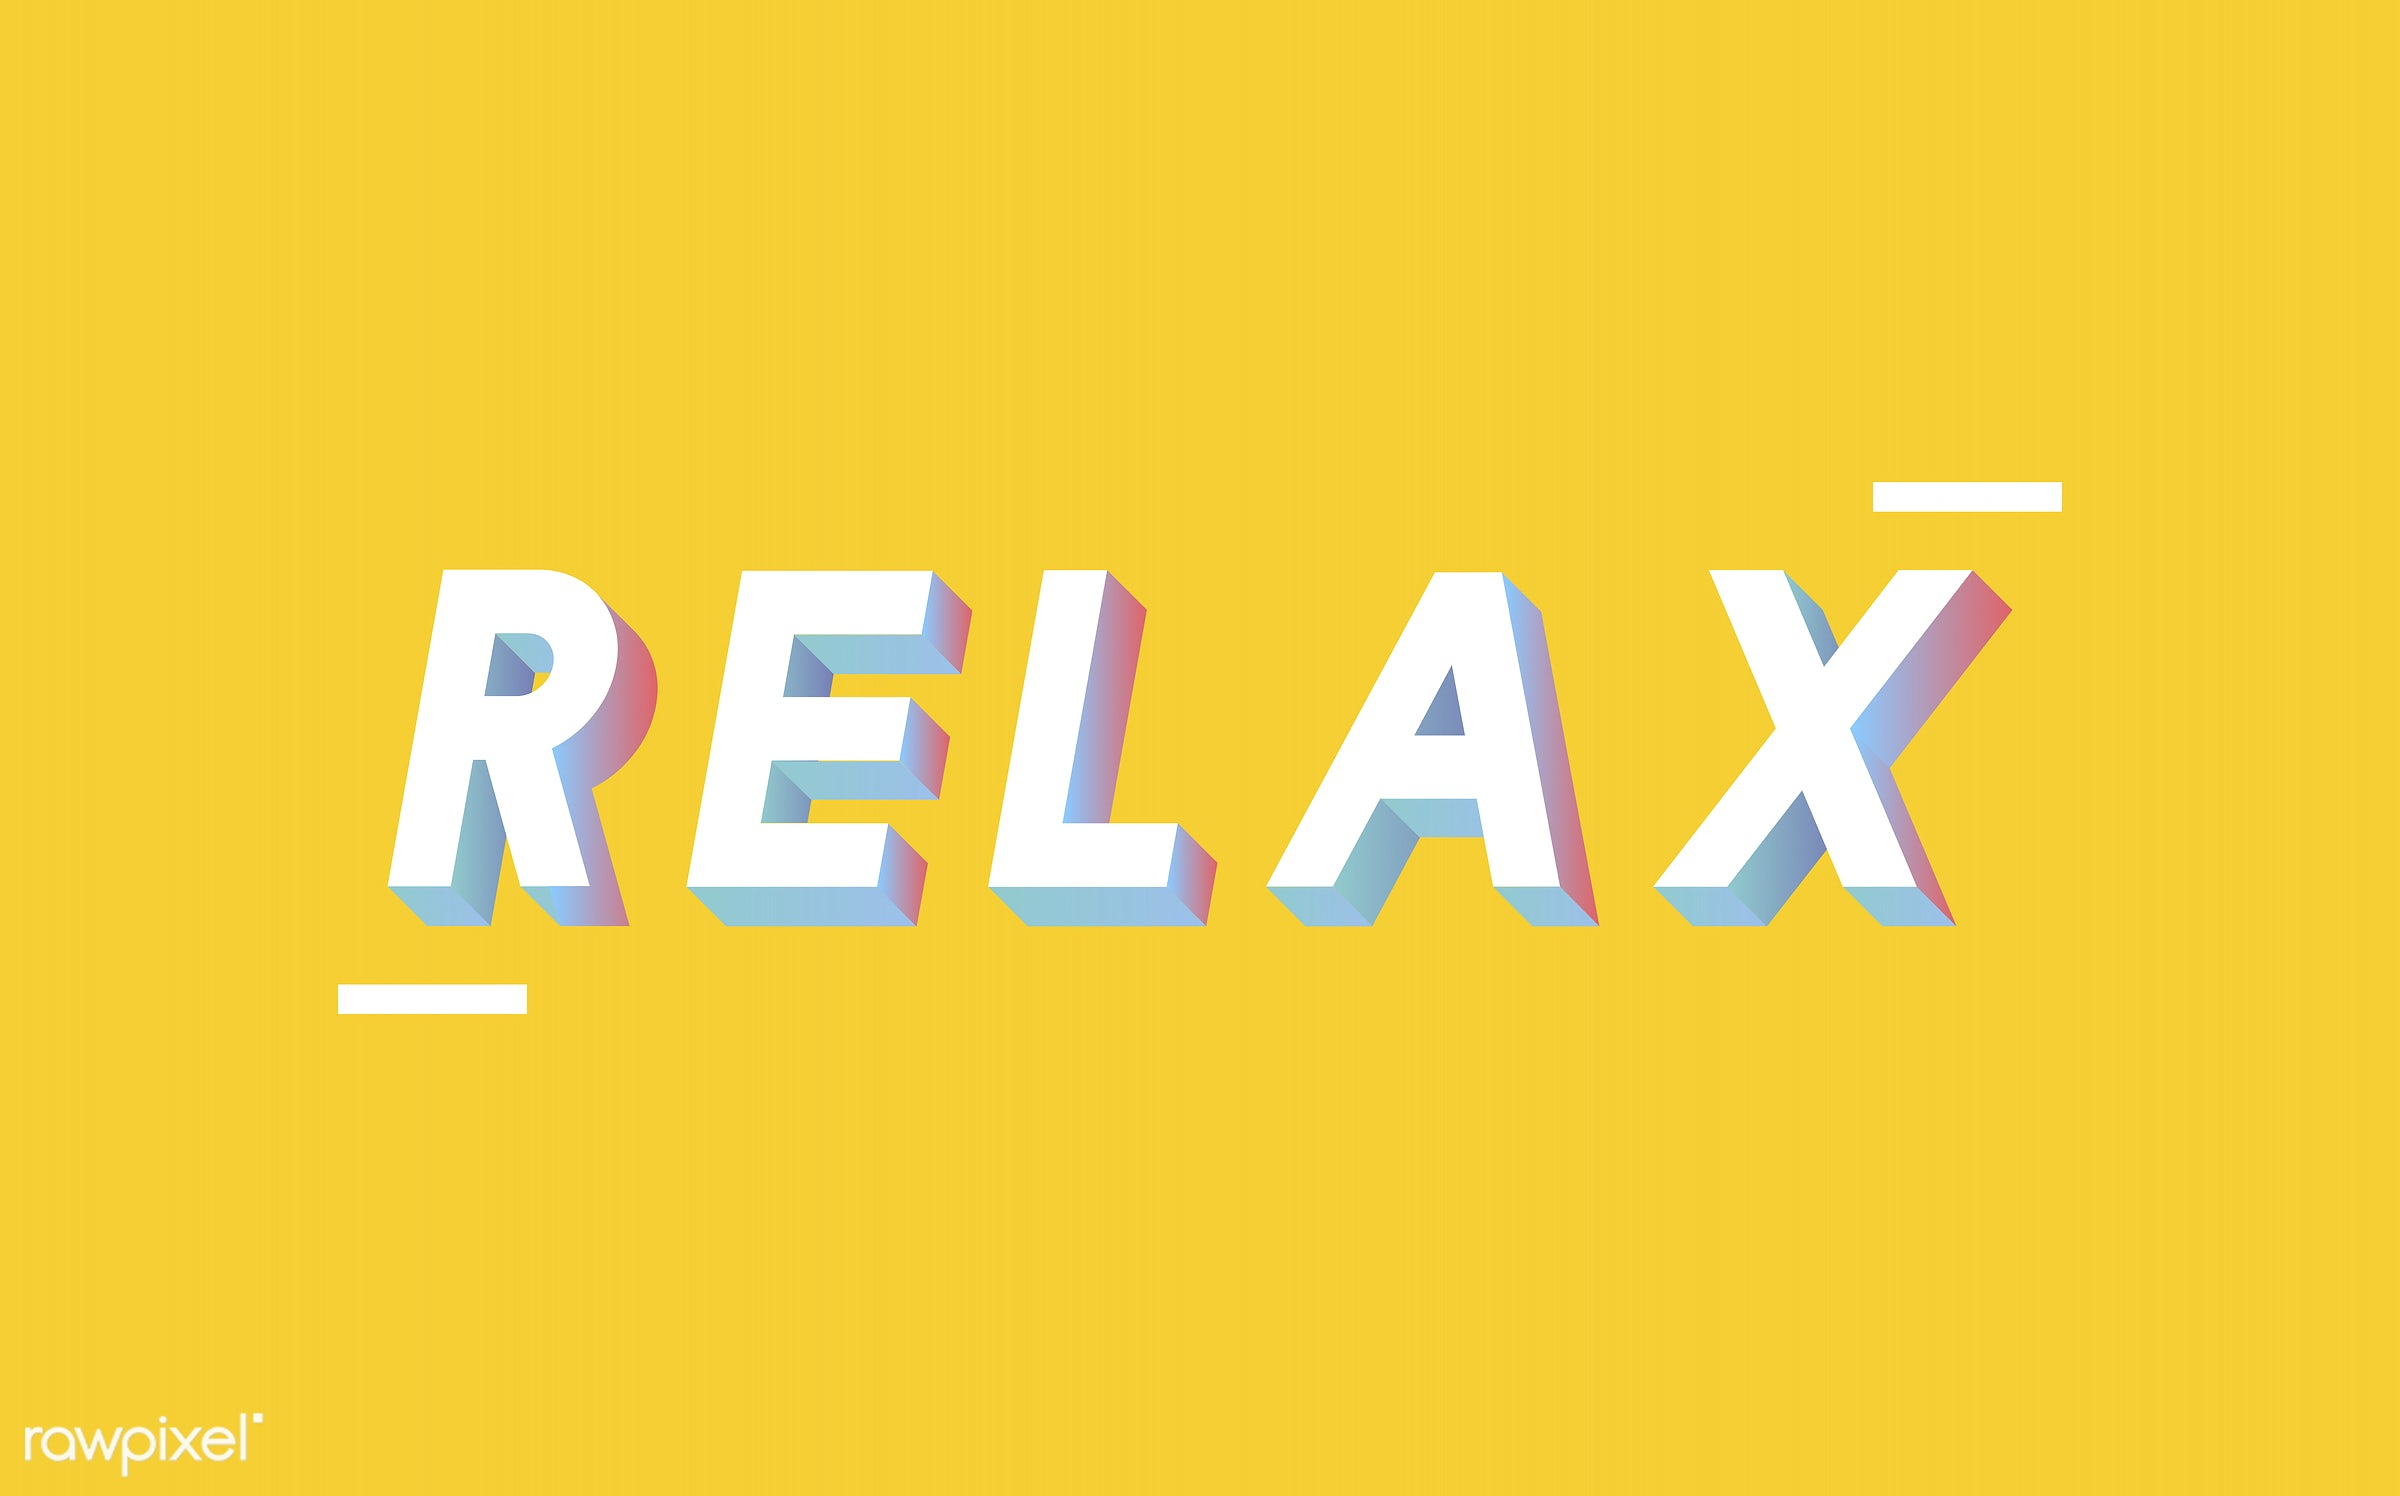 neon, colorful, 3d, three dimensional, vector, illustration, graphic, word, yellow, white, relax, relaxation, relaxing